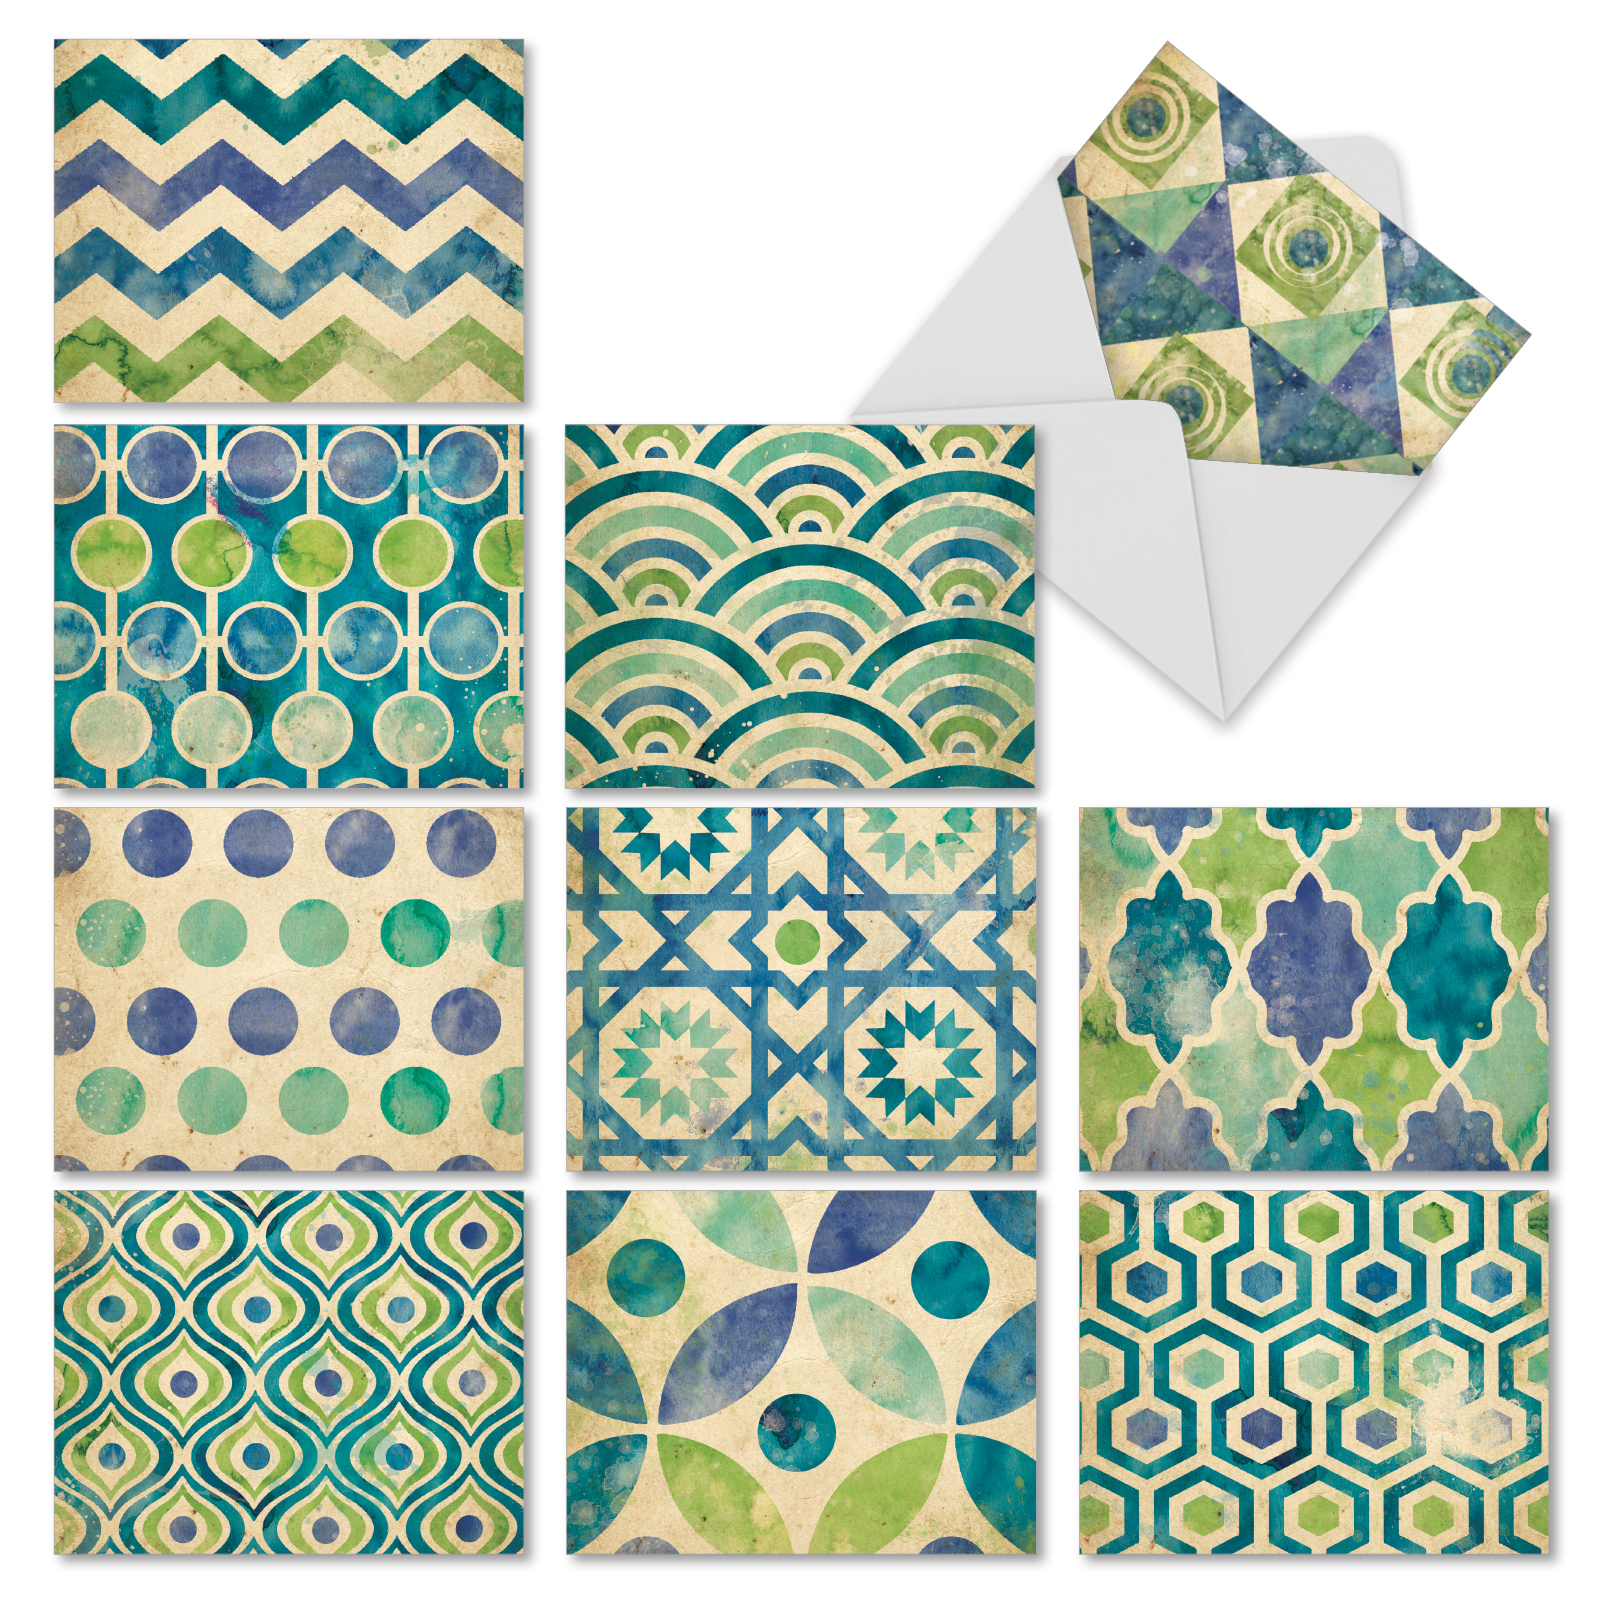 M6685OCB Watercolor Tiles: 10 Assorted Blank All-Occasion Note Cards with Envelopes, The Best Card Company